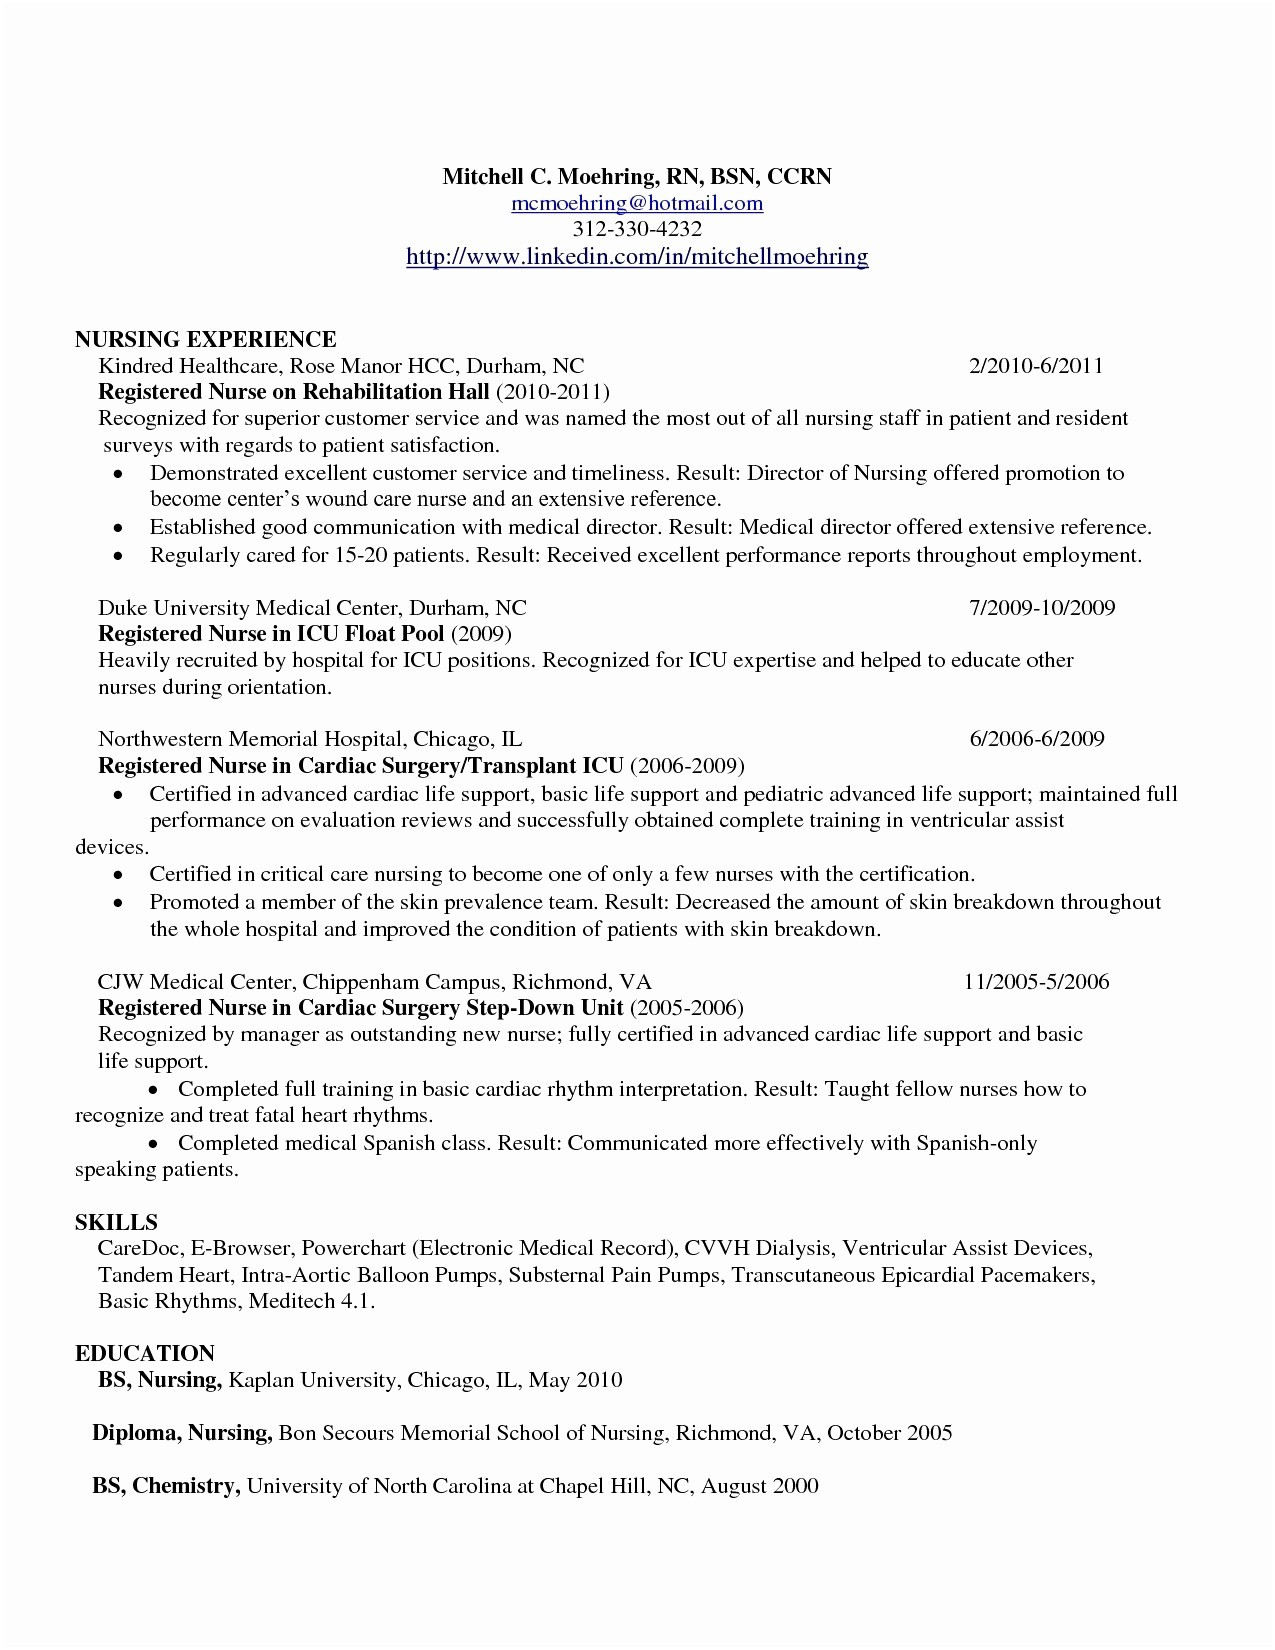 Hr Resume Template - Rn Bsn Resume Awesome Nurse Resume 0d Wallpapers 42 Beautiful Nurse